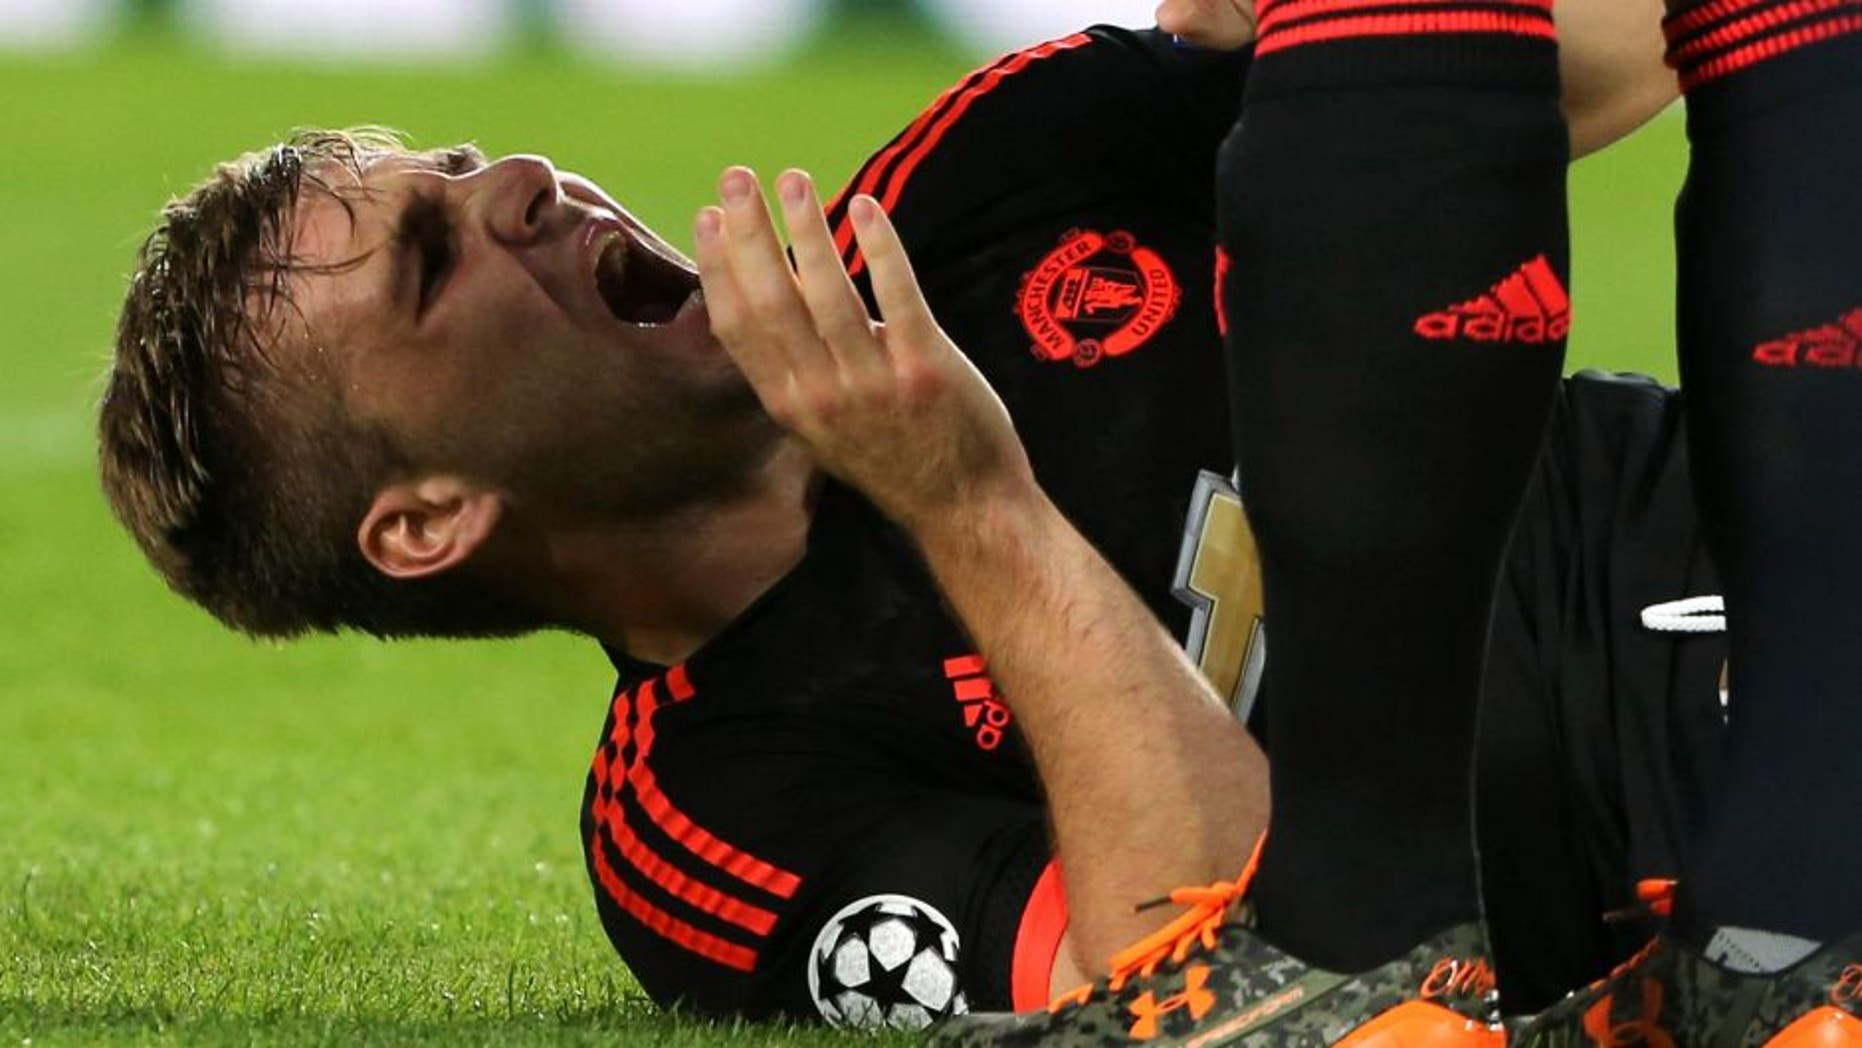 EINDHOVEN, NETHERLANDS - SEPTEMBER 15: Luke Shaw of Manchester United receives treatment on a leg injury during the UEFA Champions League match between PSV Eindhoven and Manchester United at Philips Stadion on September 15, 2015 in Eindhoven, Netherlands. (Photo by John Peters/Man Utd via Getty Images)